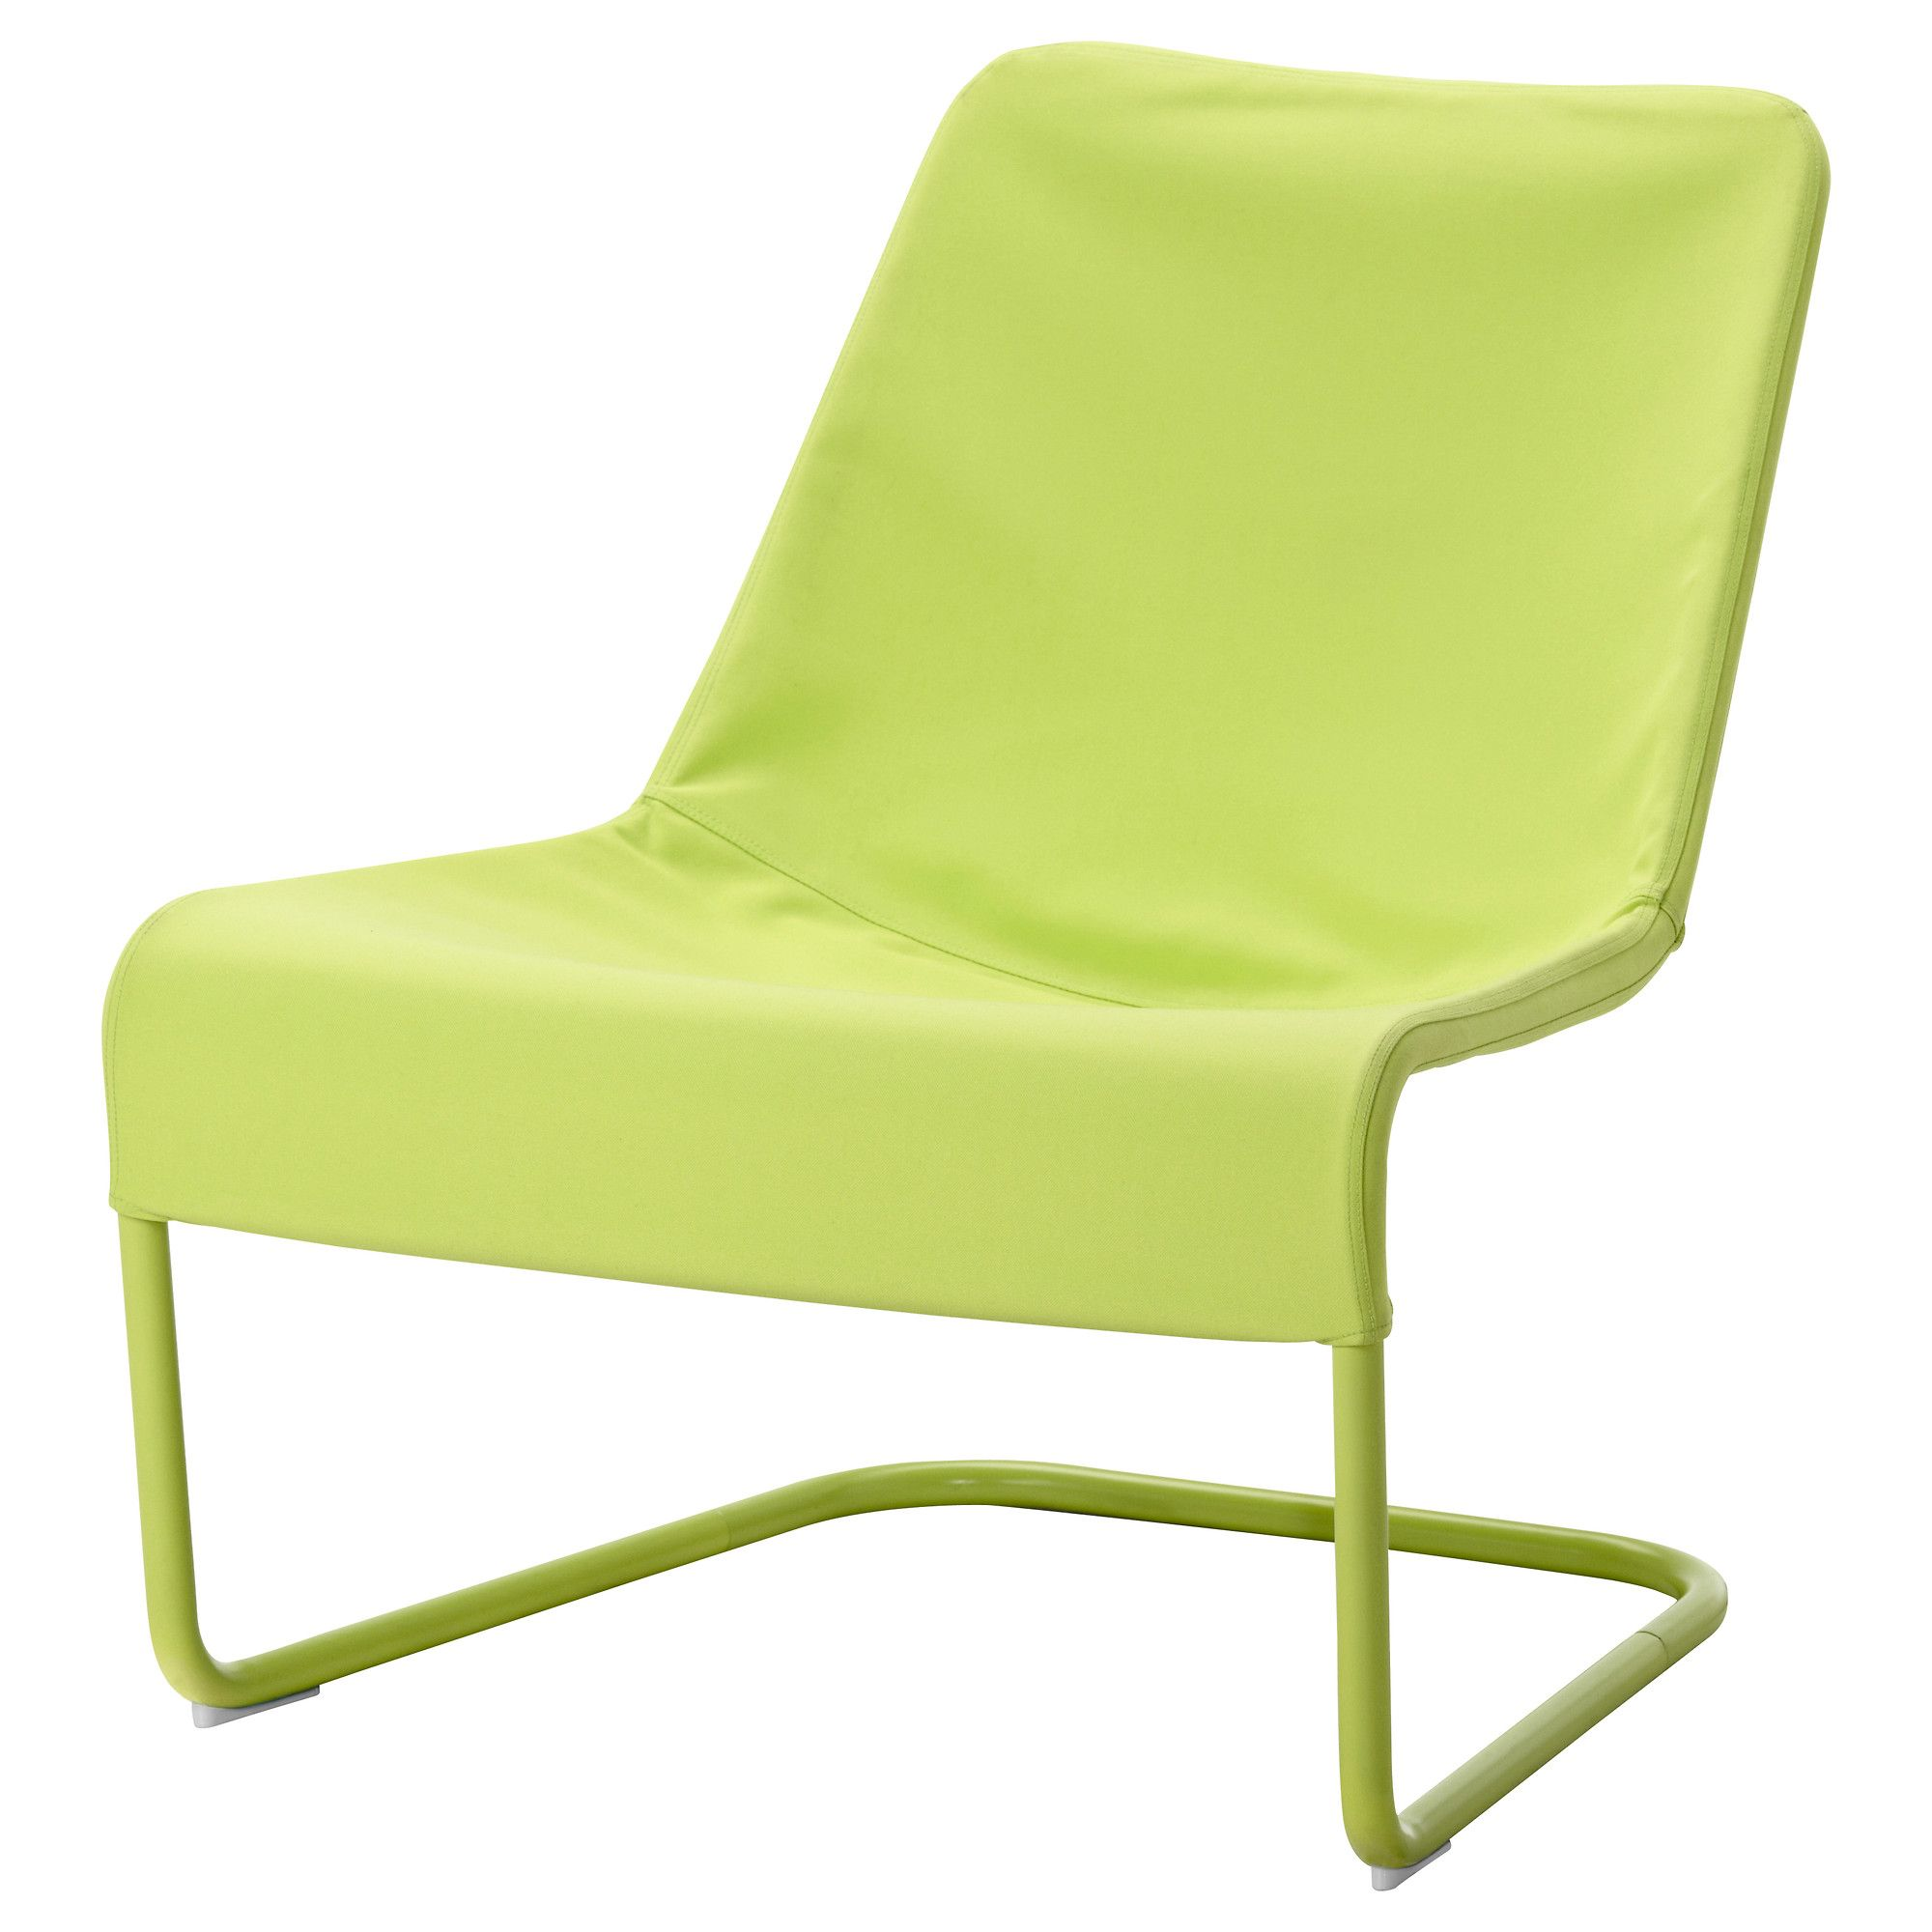 LOCKSTA Sessel grün IKEA all things green